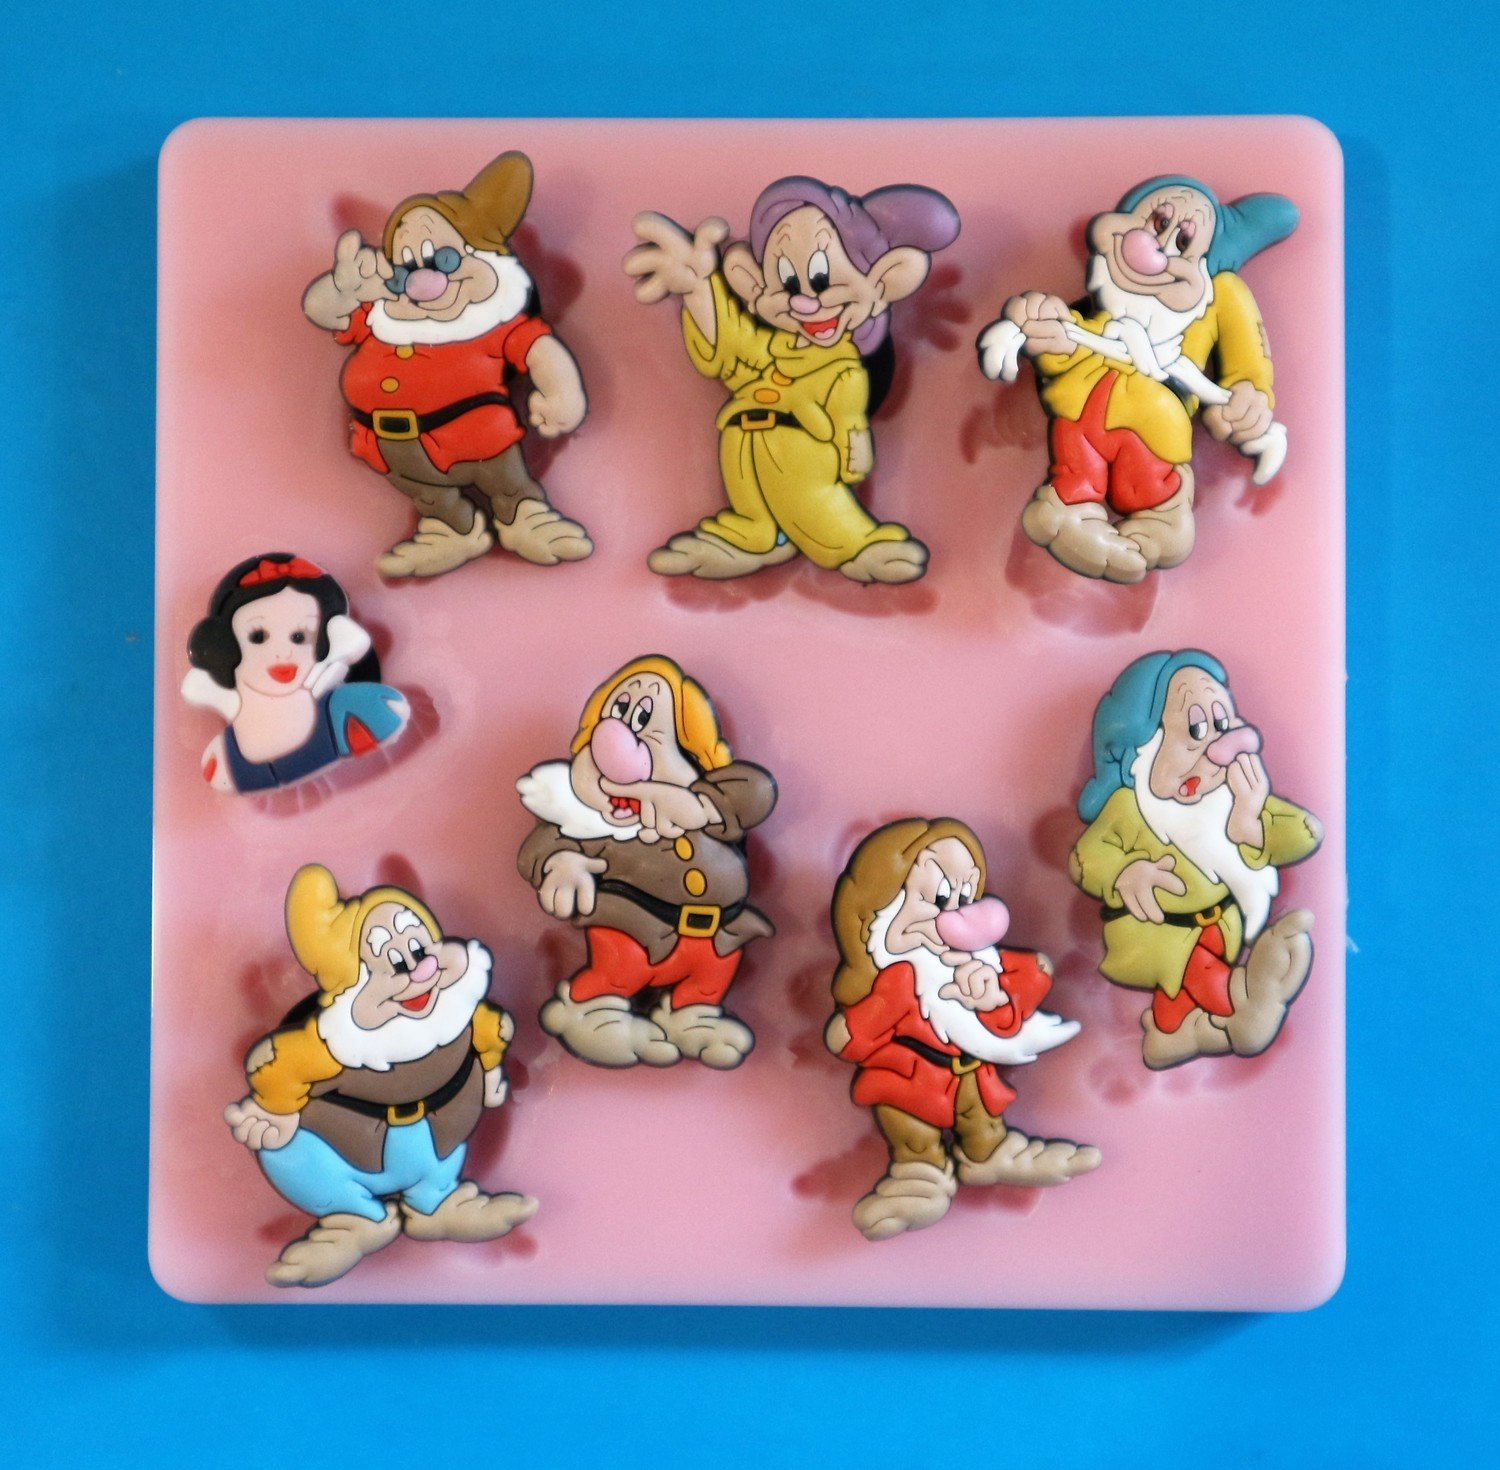 SNOW WHITE AND THE SEVEN DWARFS SILICONE MOULD